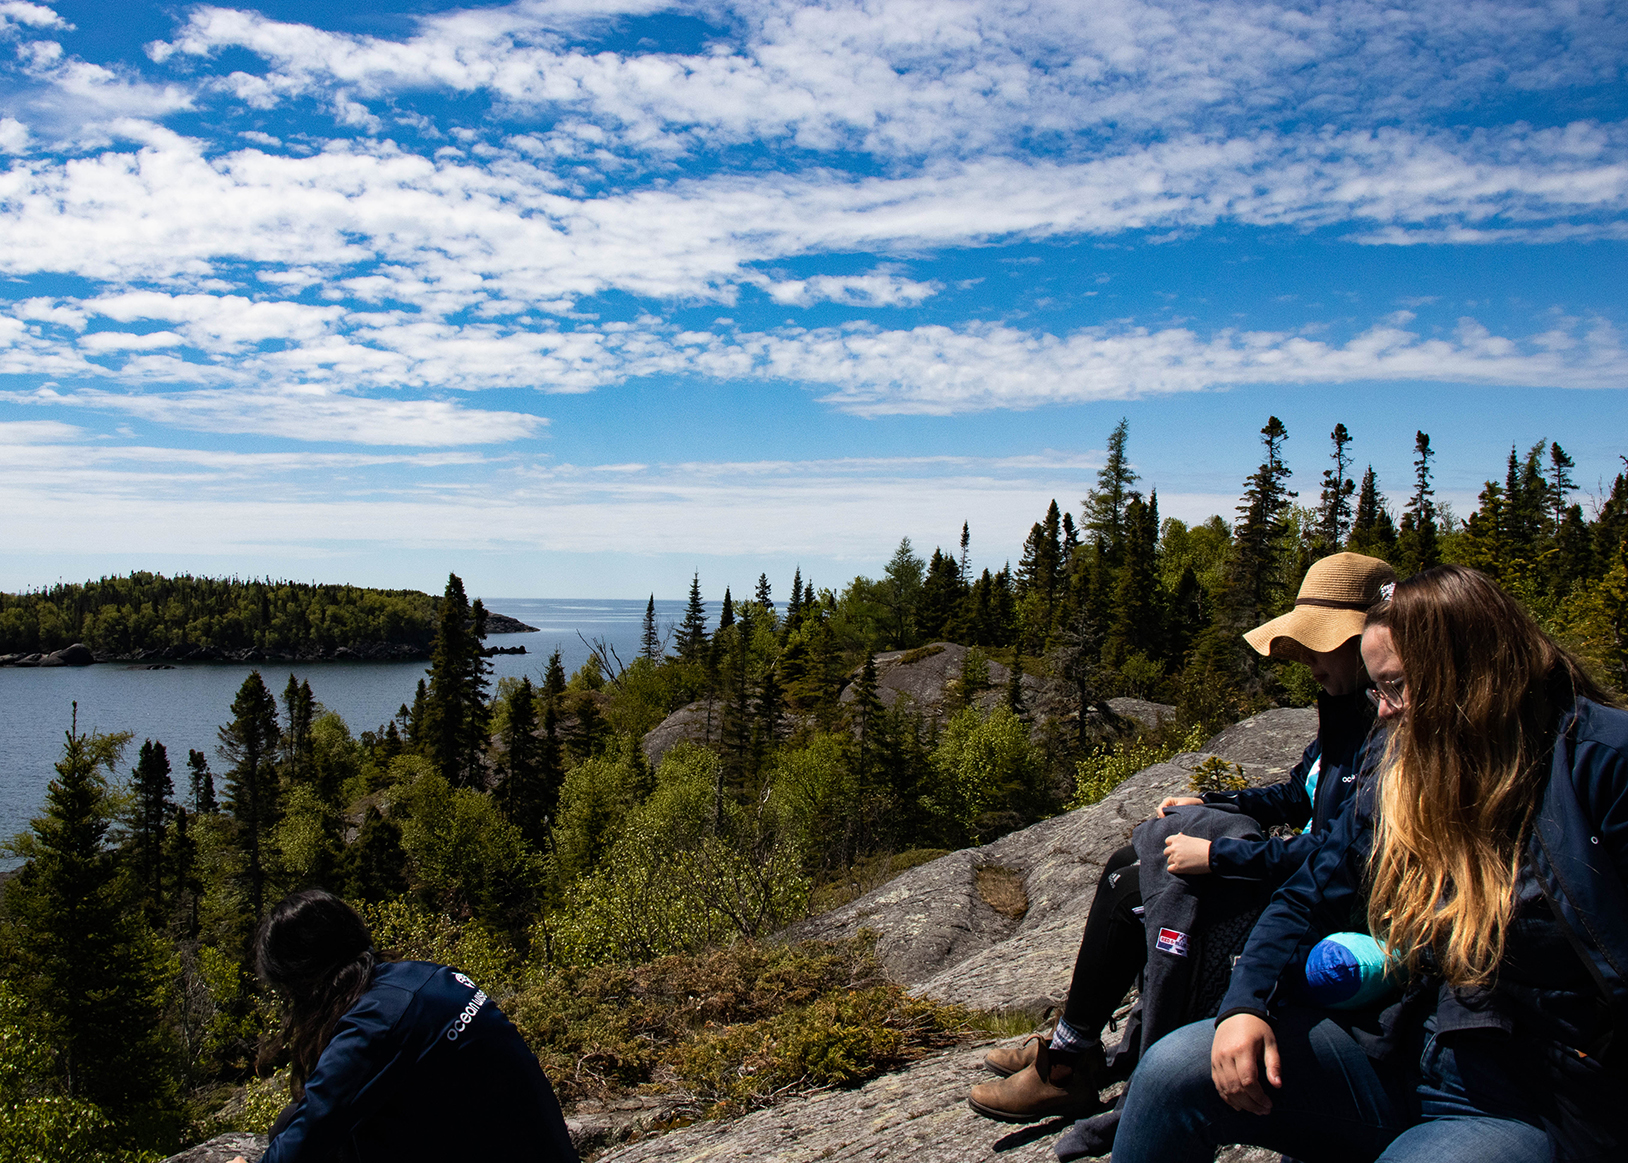 Stopping for a picnic after an educational hike at Pukaskwa National Park. (Photo: Connor Garrod)